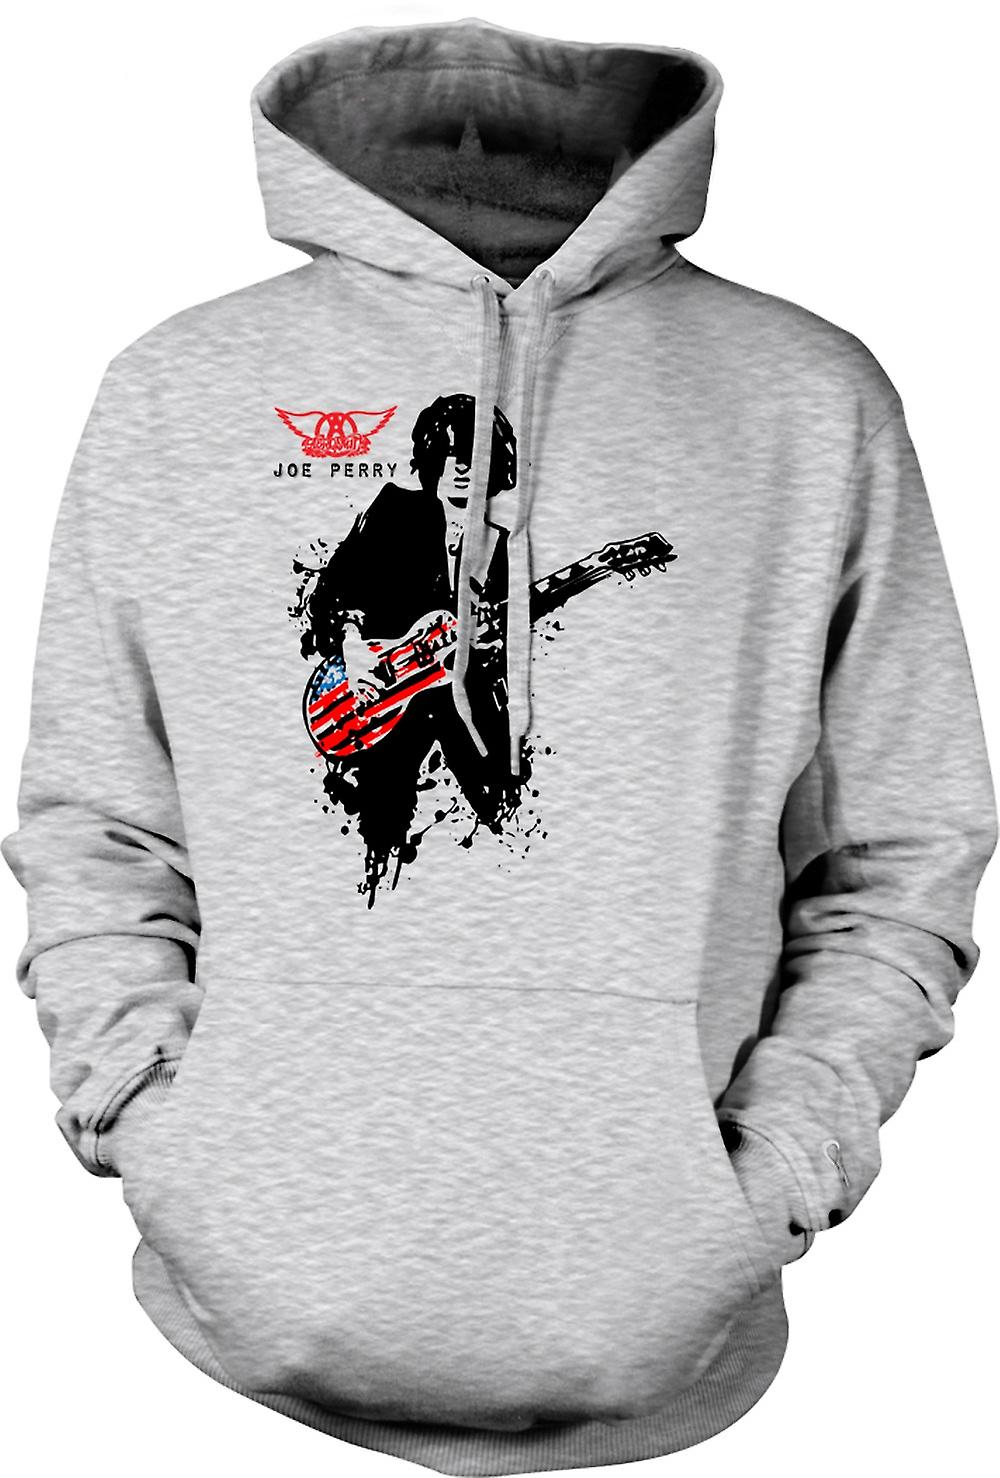 Mens Hoodie - Aerosmith - Joe Perry - Guitar